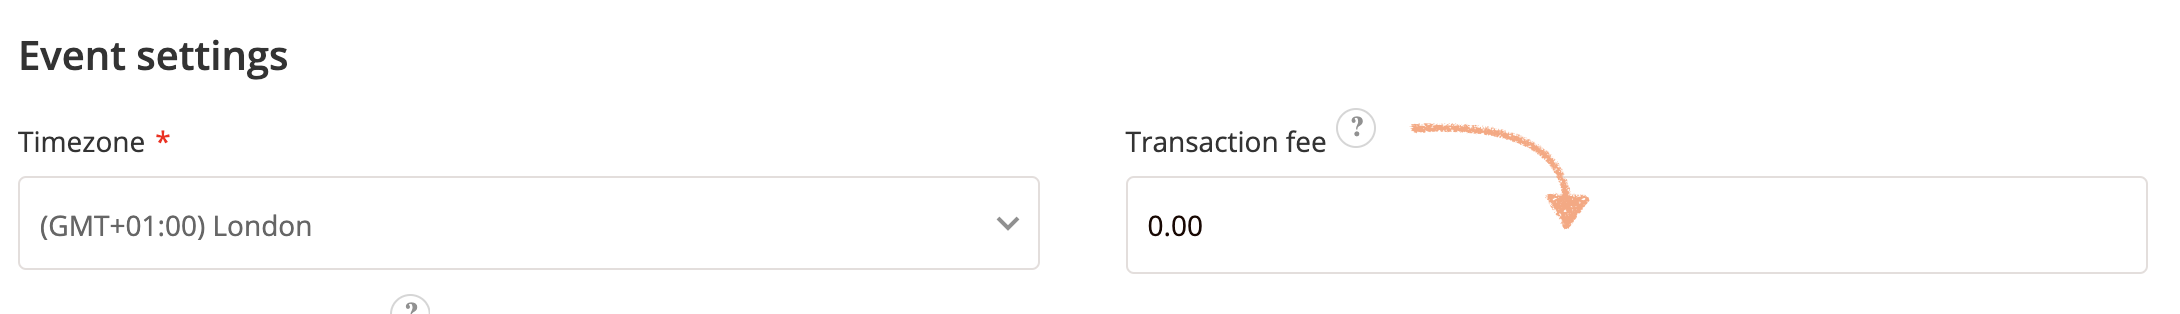 Screenshot showing the Ticket Tailor event settings, with an arrow pointing to the transaction fee box.